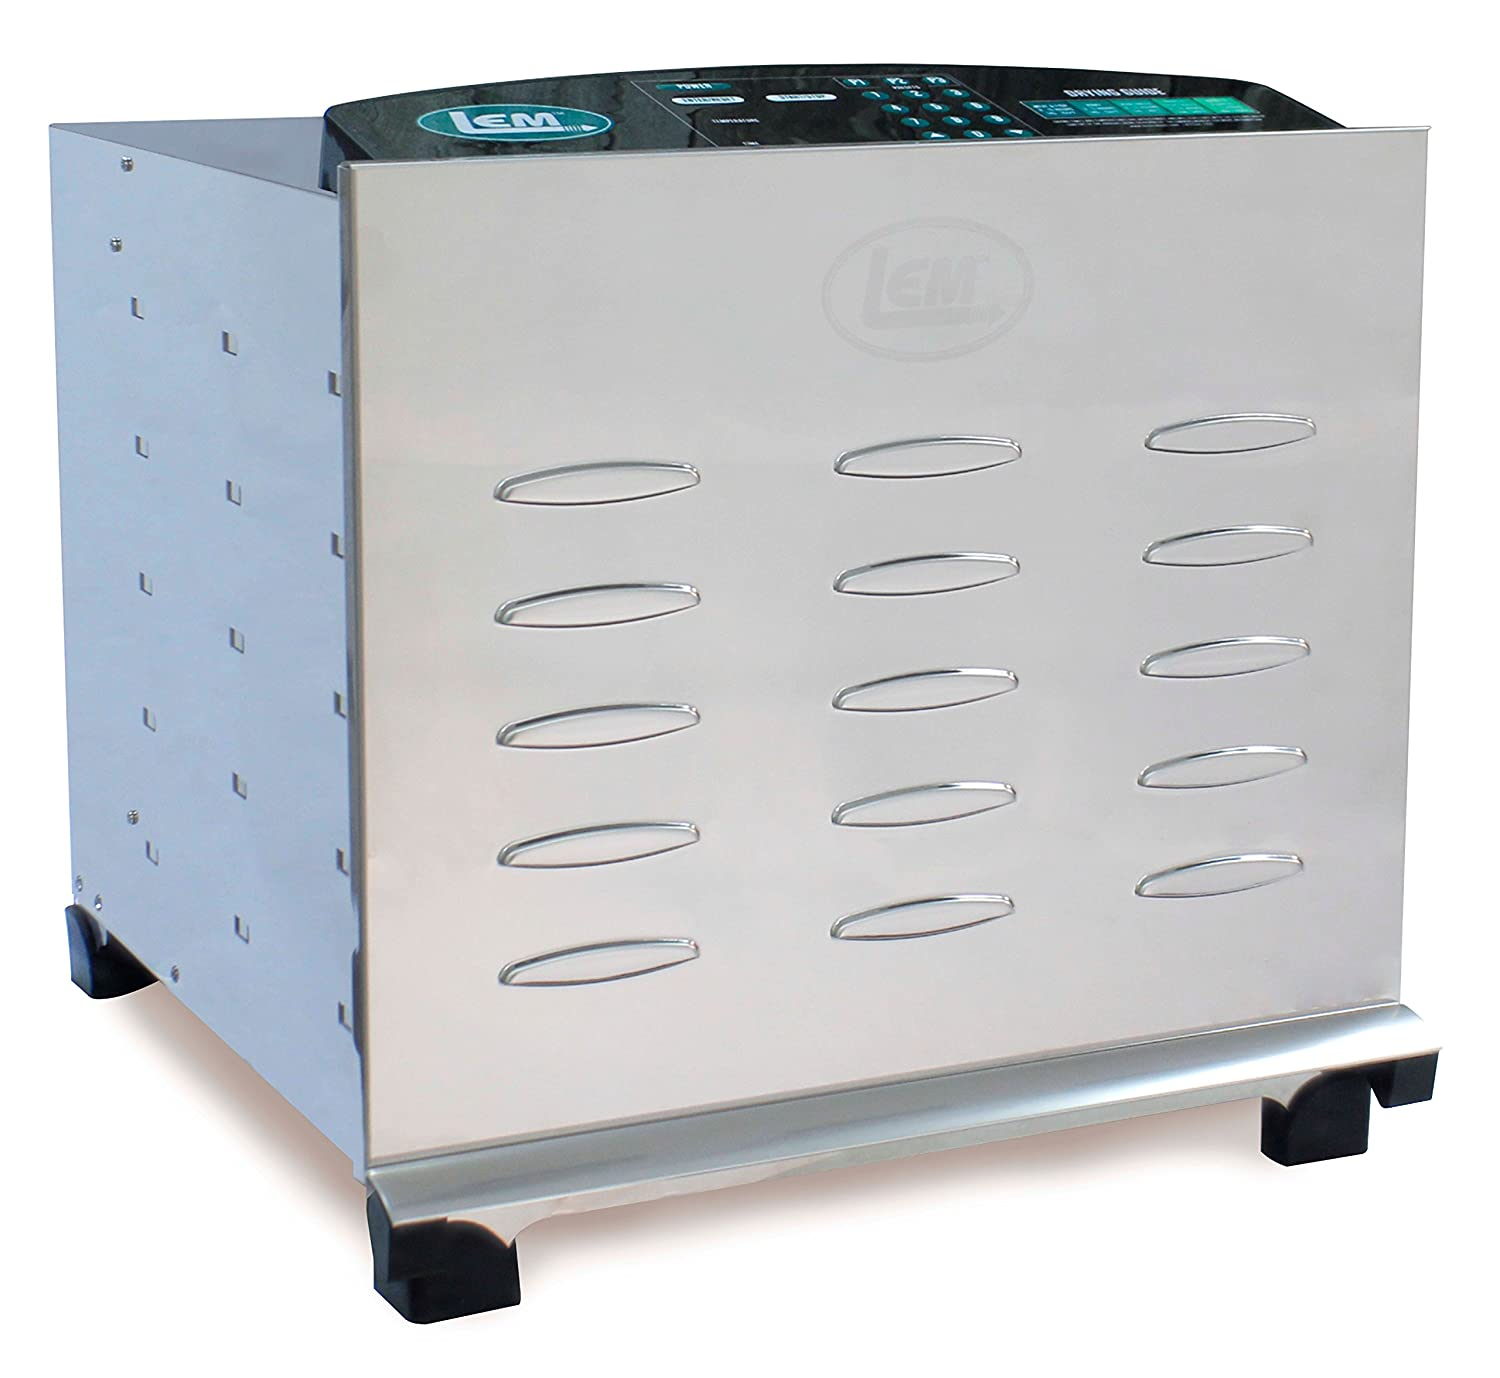 LEM Products 1154 Stainless Steel Professional 10-Tray Digital Dehydrator